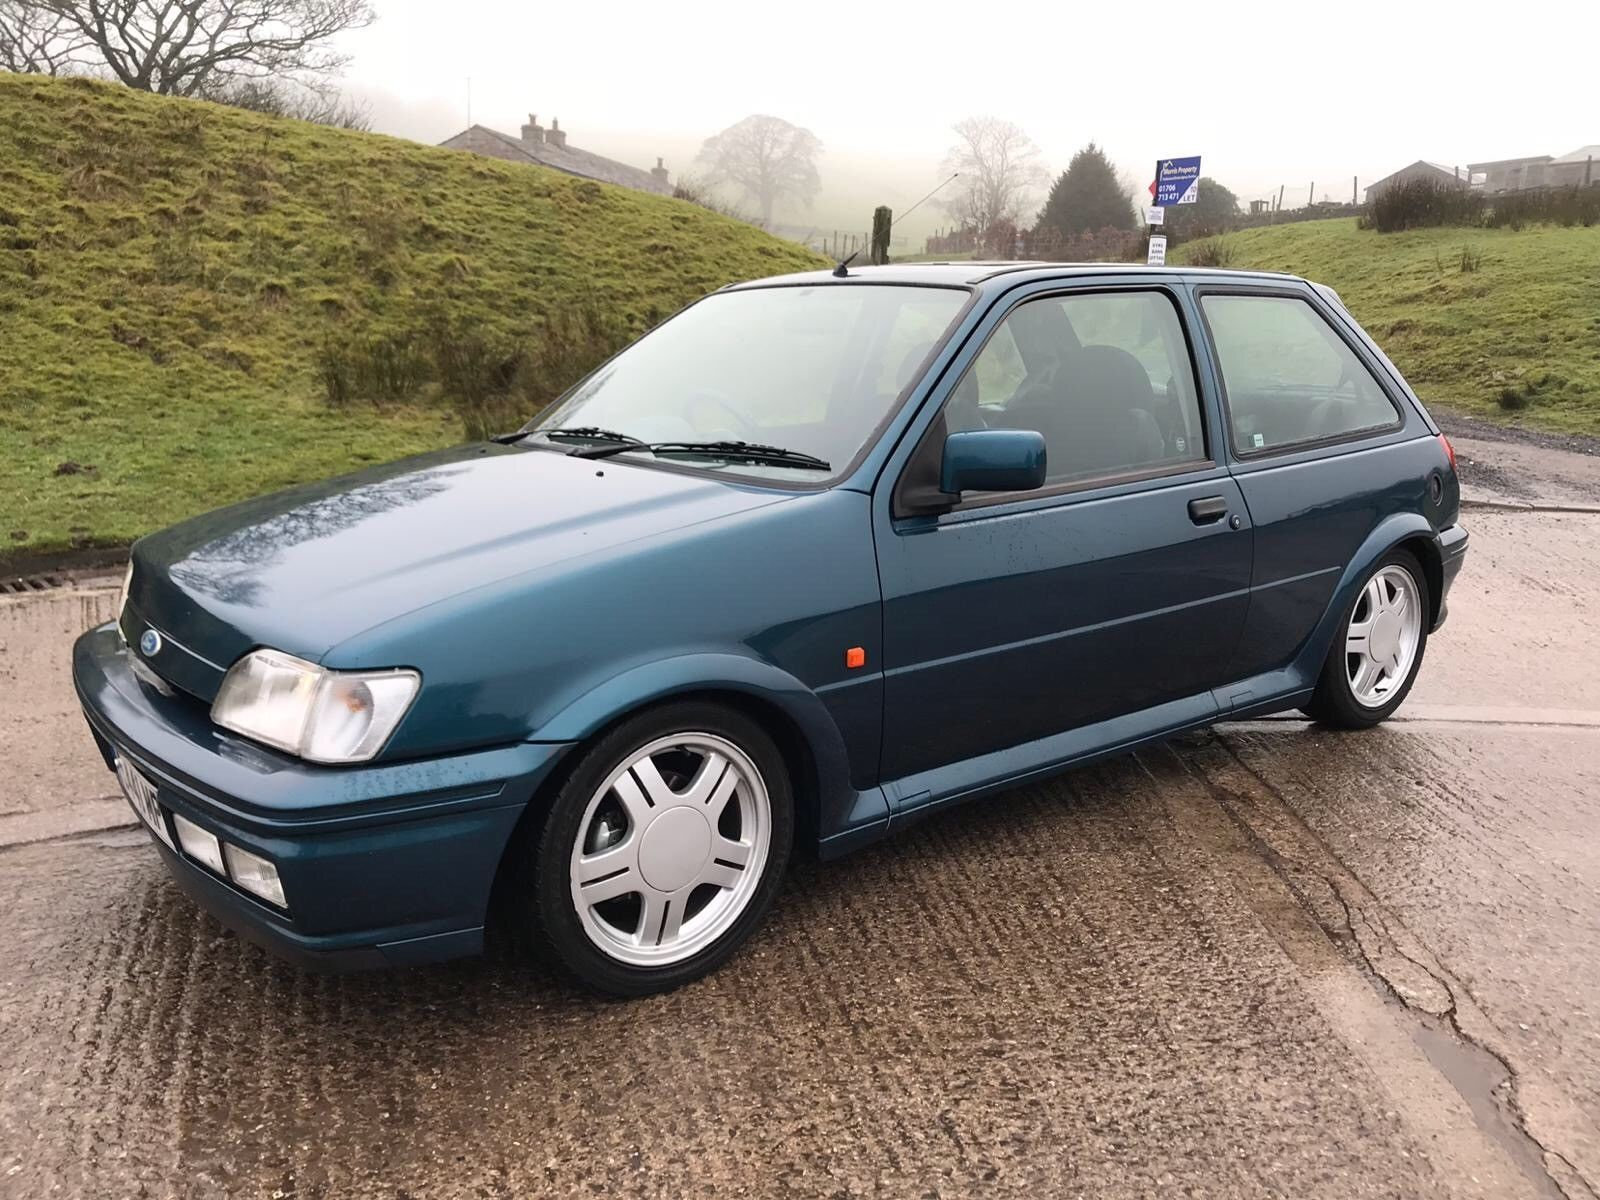 Check Out This Fast Ford Ford Fiesta Xr2i 16v 94k Miles Hot